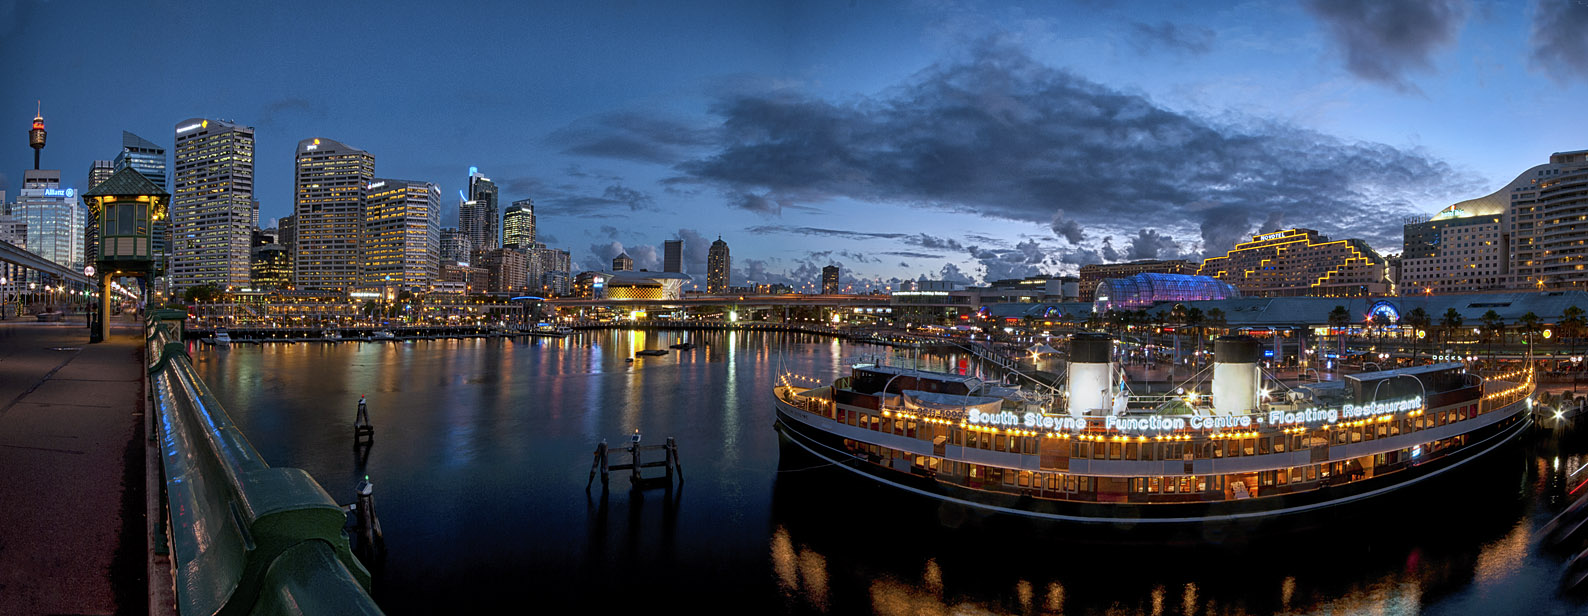 escorts darling harbour out calls Western Australia